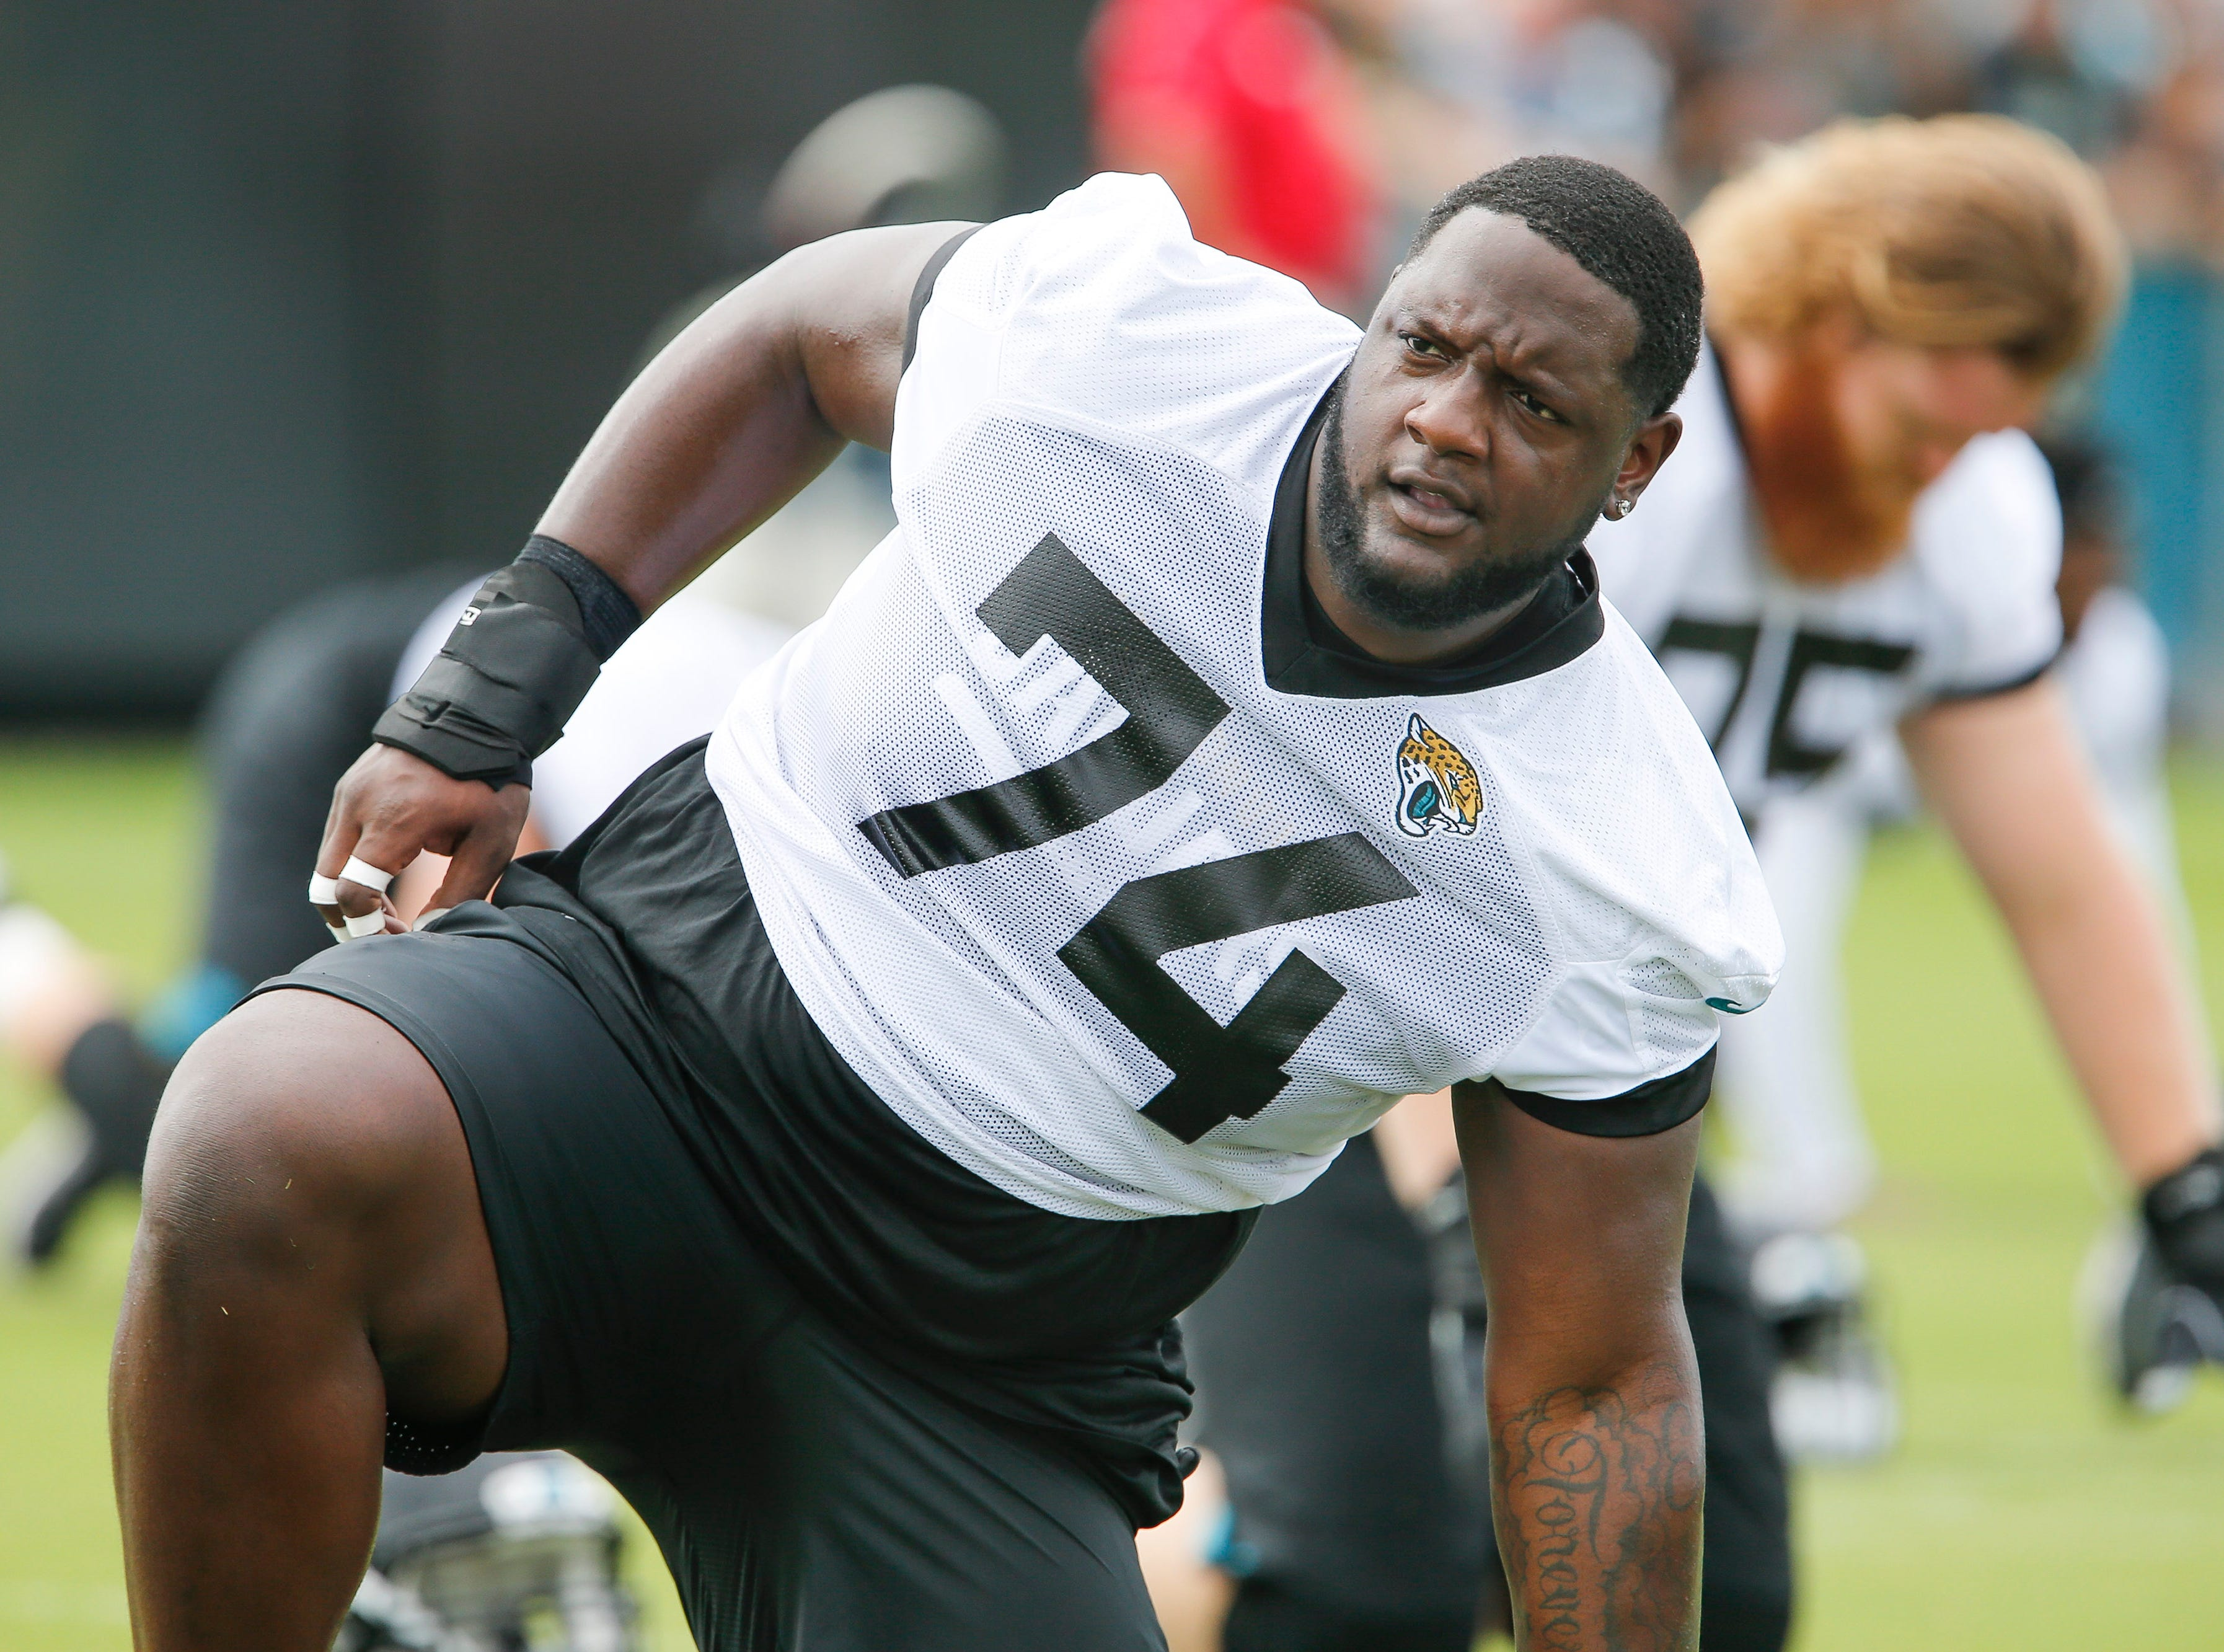 Jul 26, 2018; Jacksonville, FL, USA; Jacksonville Jaguars offensive tackle Cam Robinson (74) stretches out during training camp at the Dream Finder Homes practice facility outside of TIAA Bank Field. Mandatory Credit: Reinhold Matay-USA TODAY Sports